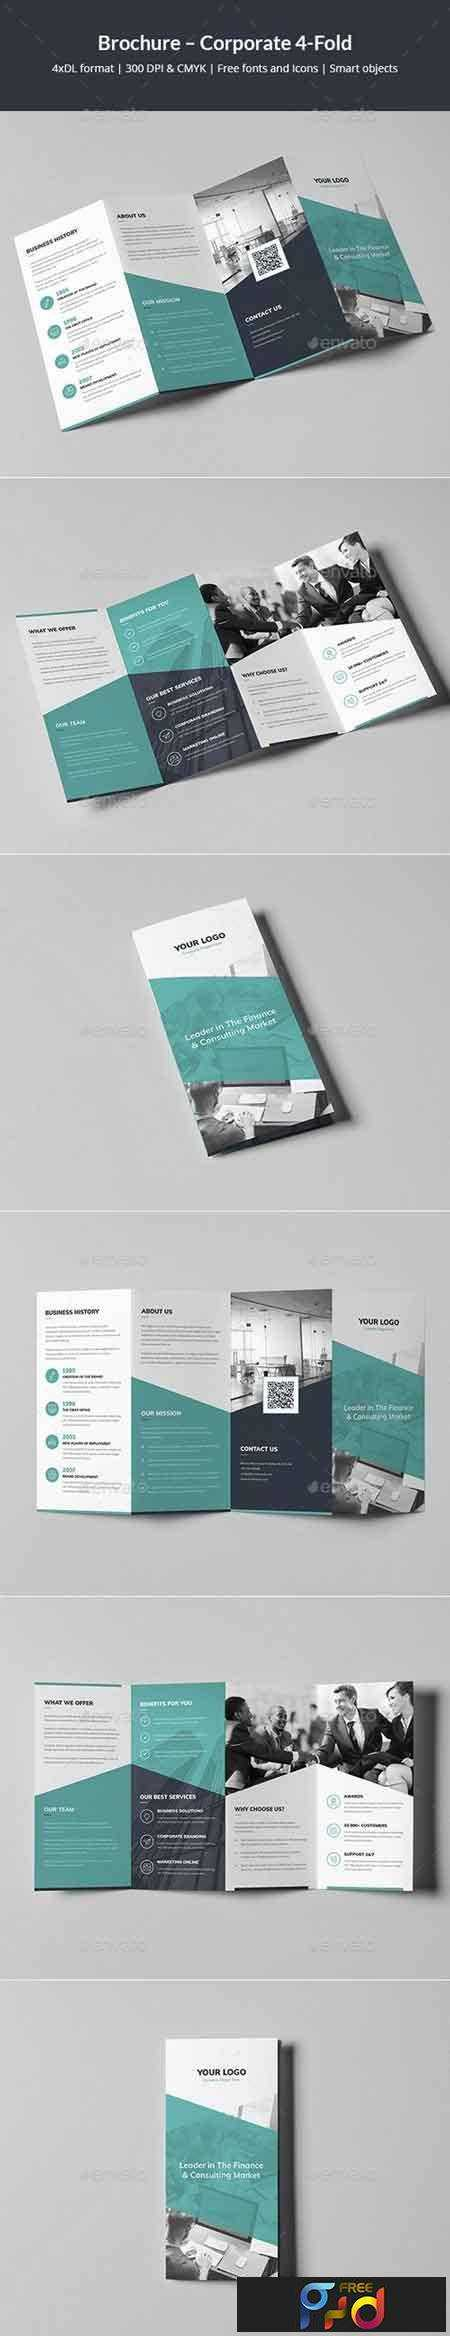 1802085 Brochure – Corporate 4-Fold 21312420 - Free PSD download ...